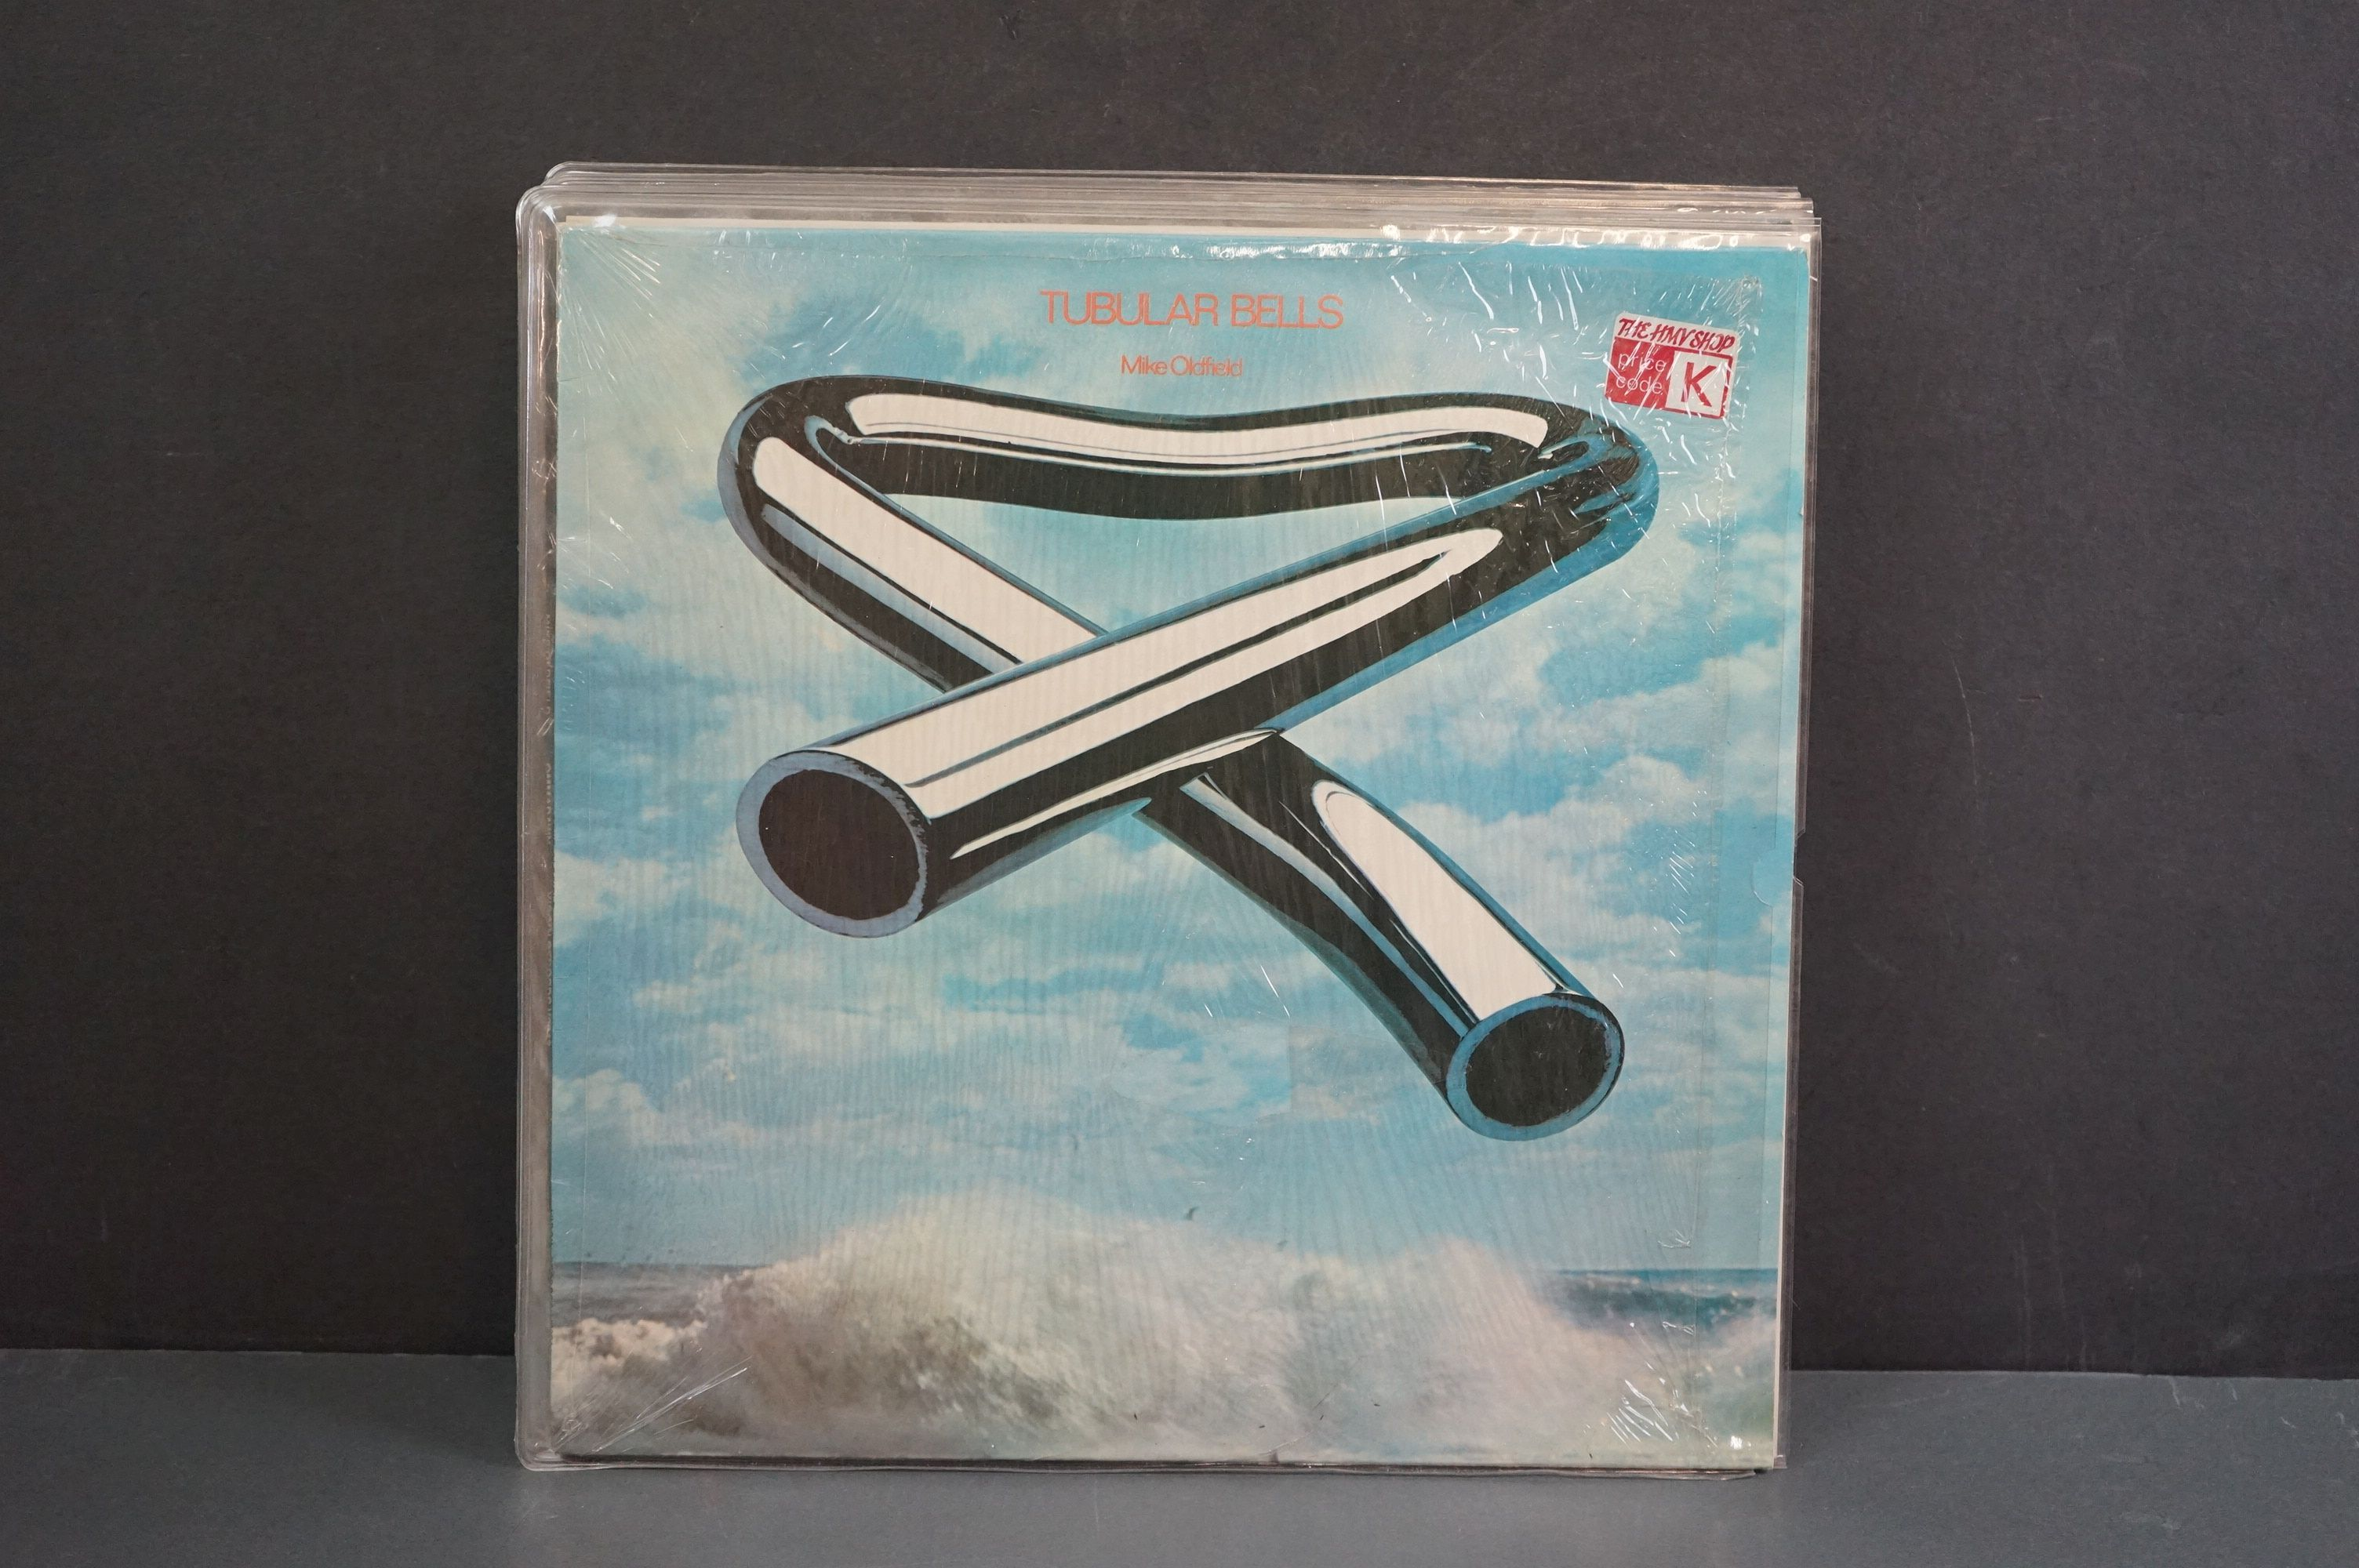 Vinyl - 14 Mike Oldfield LPs to include Tubular Bells, Five Miles Out, Best Of, Discovery etc, - Image 2 of 15